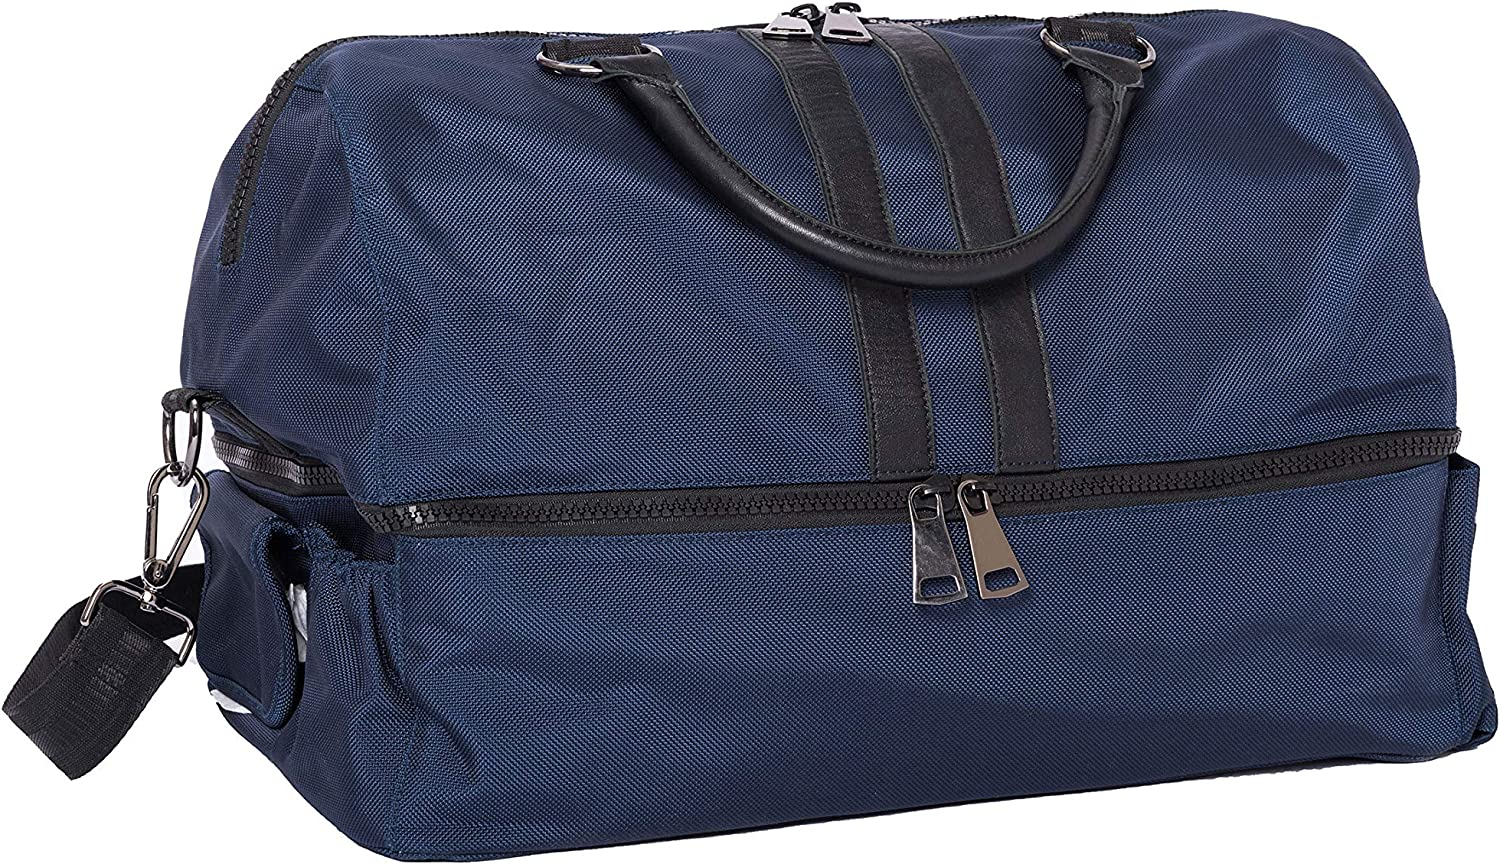 Image of Baby E.C. Knox, Luxury Diaper Bags for Dads, Colton Weekender, Navy